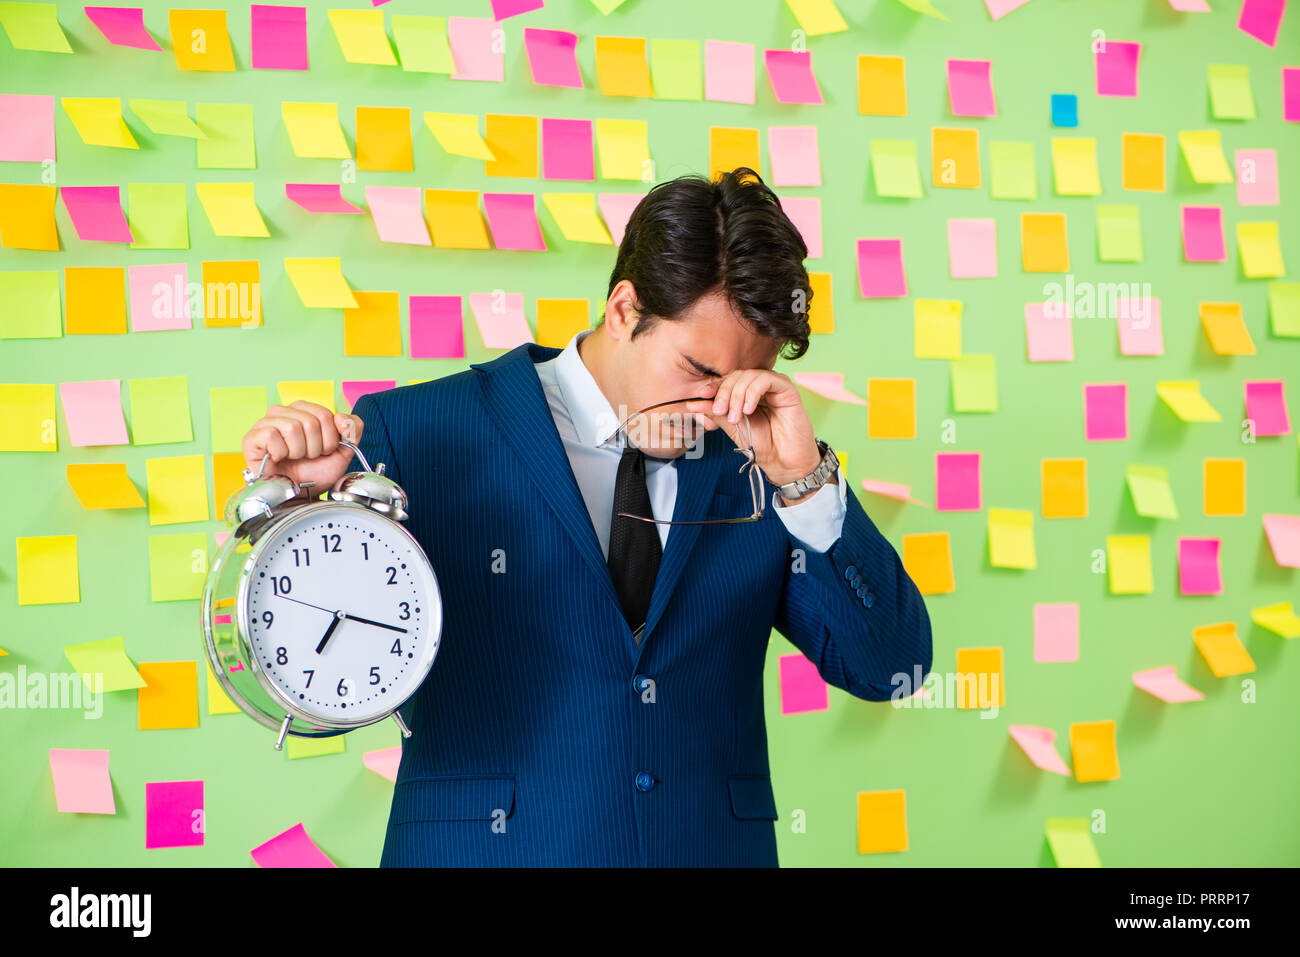 Businessman with many business priorities - Stock Image